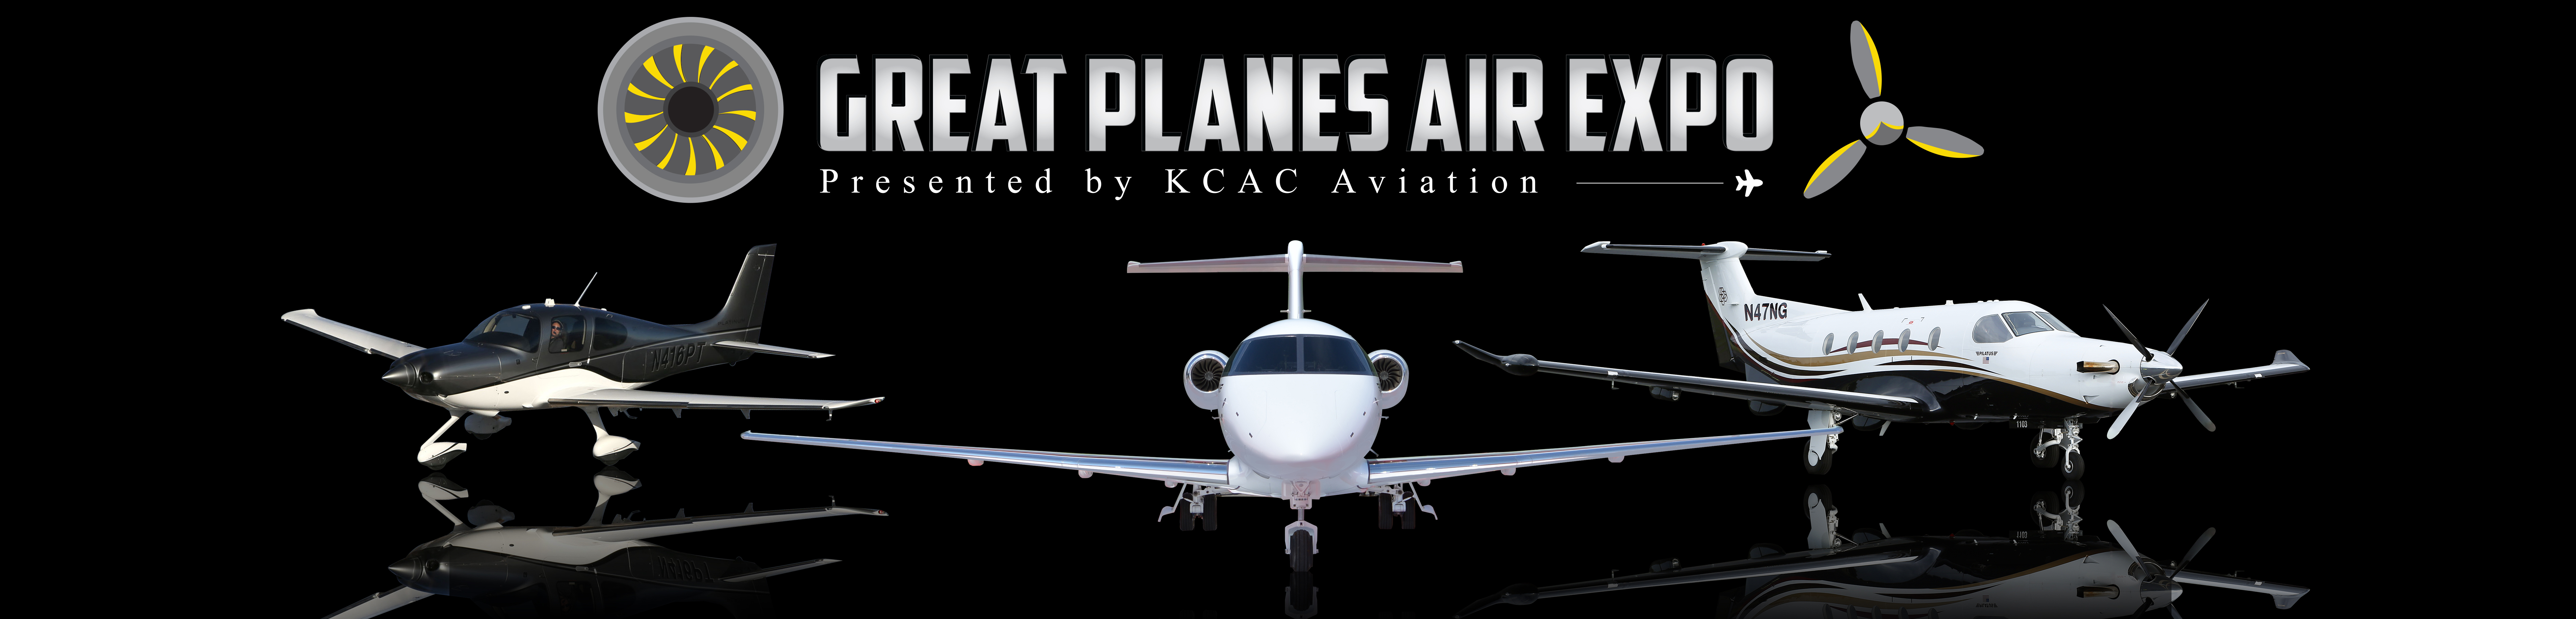 Great Planes Air Expo Presented by KCAC Aviation